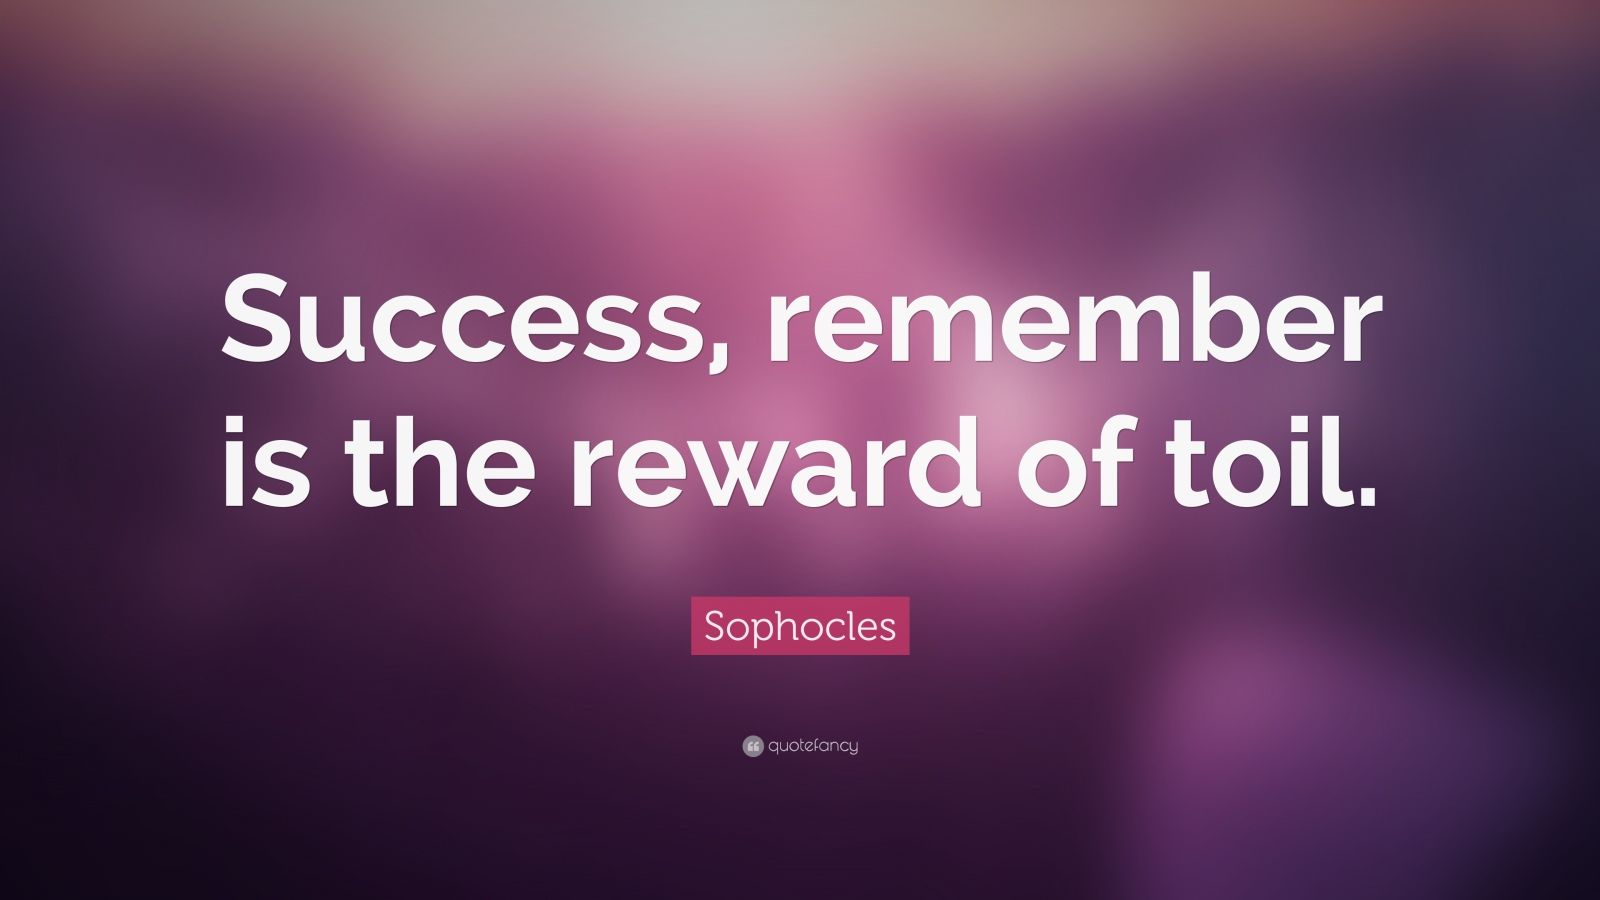 """Sophocles Quote: """"Success, remember is the reward of toil."""""""